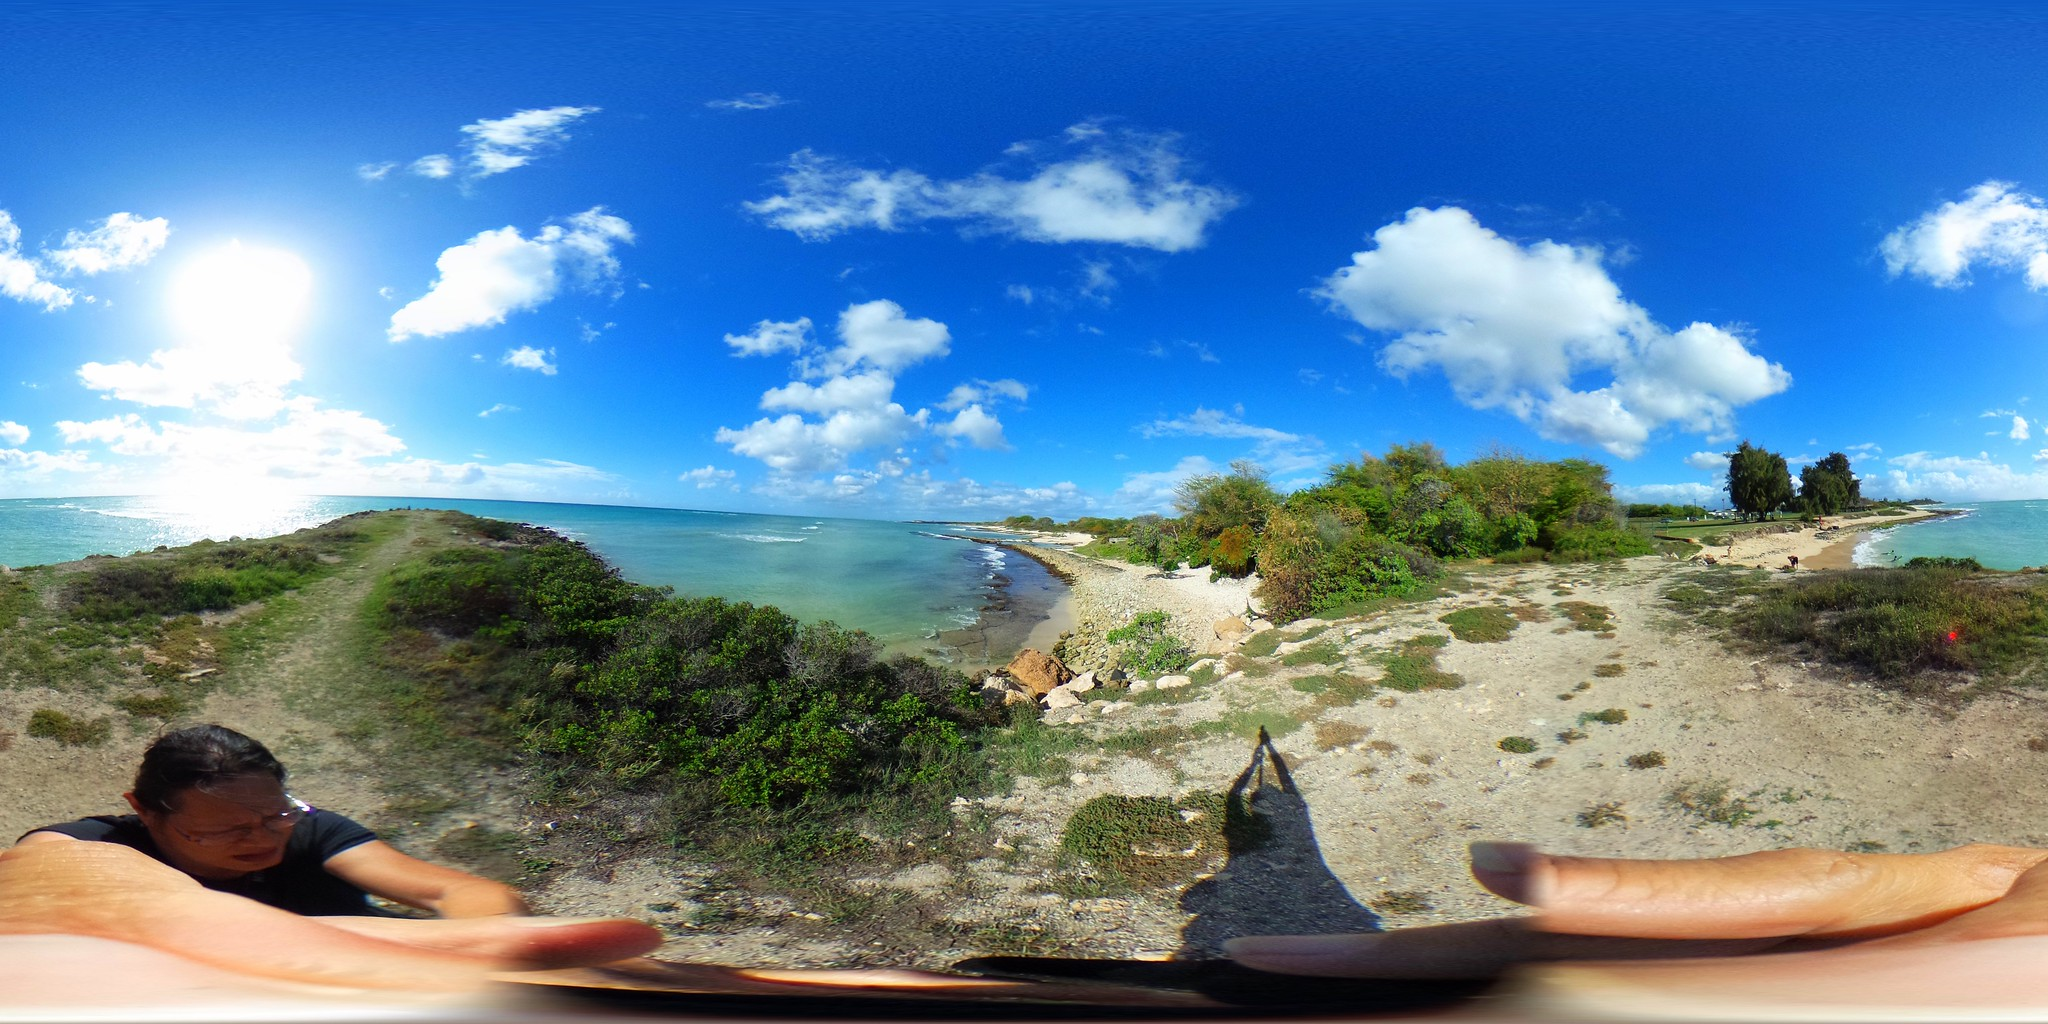 Nimitz Cove Beach at Kalaeloa, Oahu, Hawaii - a 360° Equirectangular VR